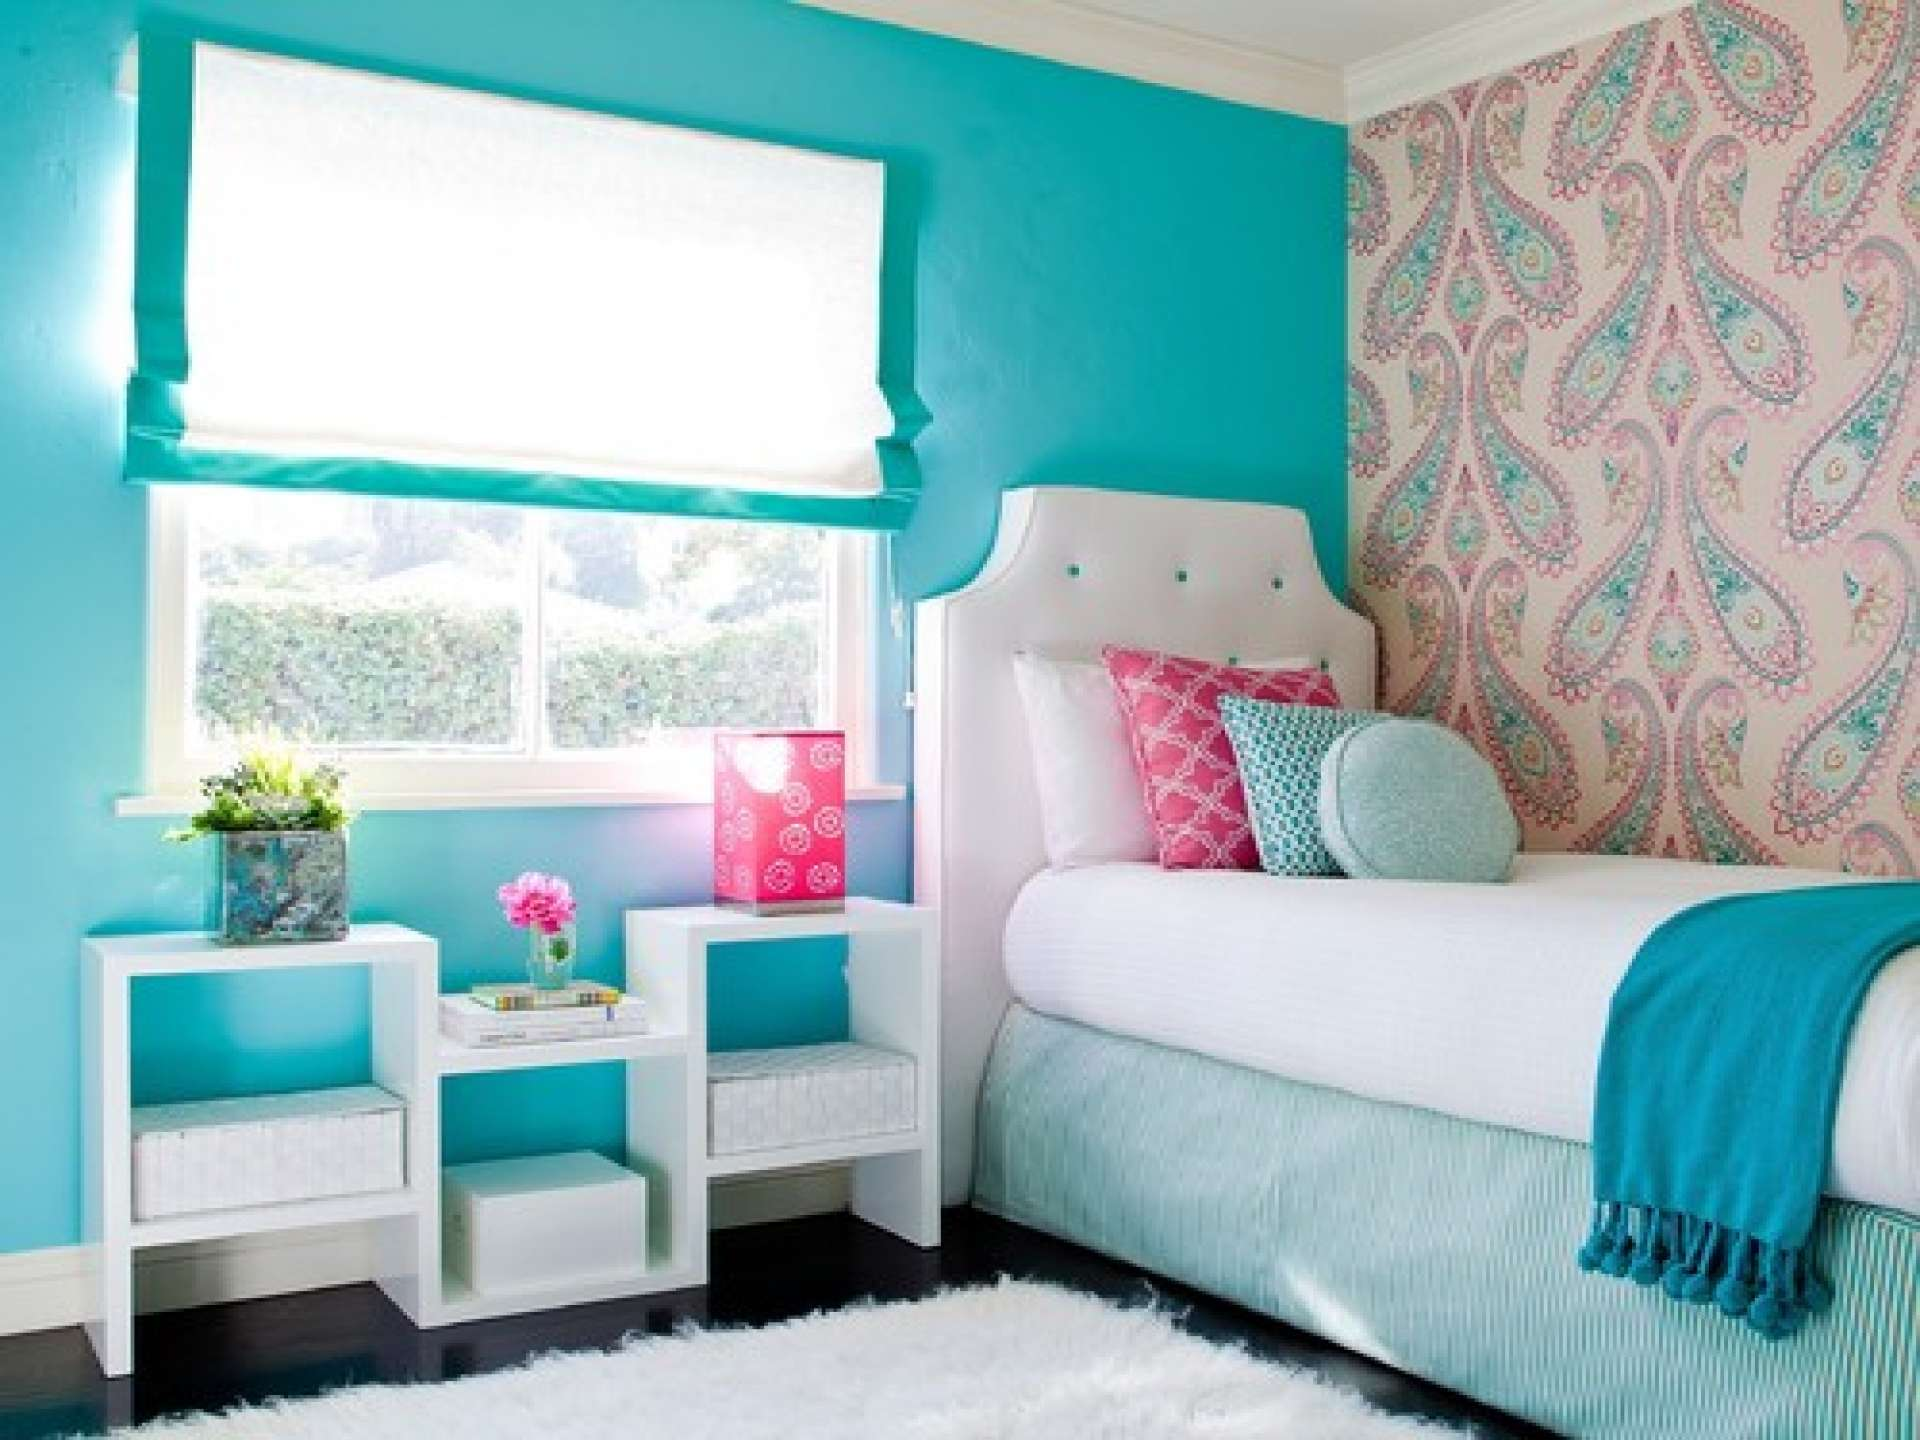 Bedroom Modern Interior Design Girl Rooms Ideas Tosca